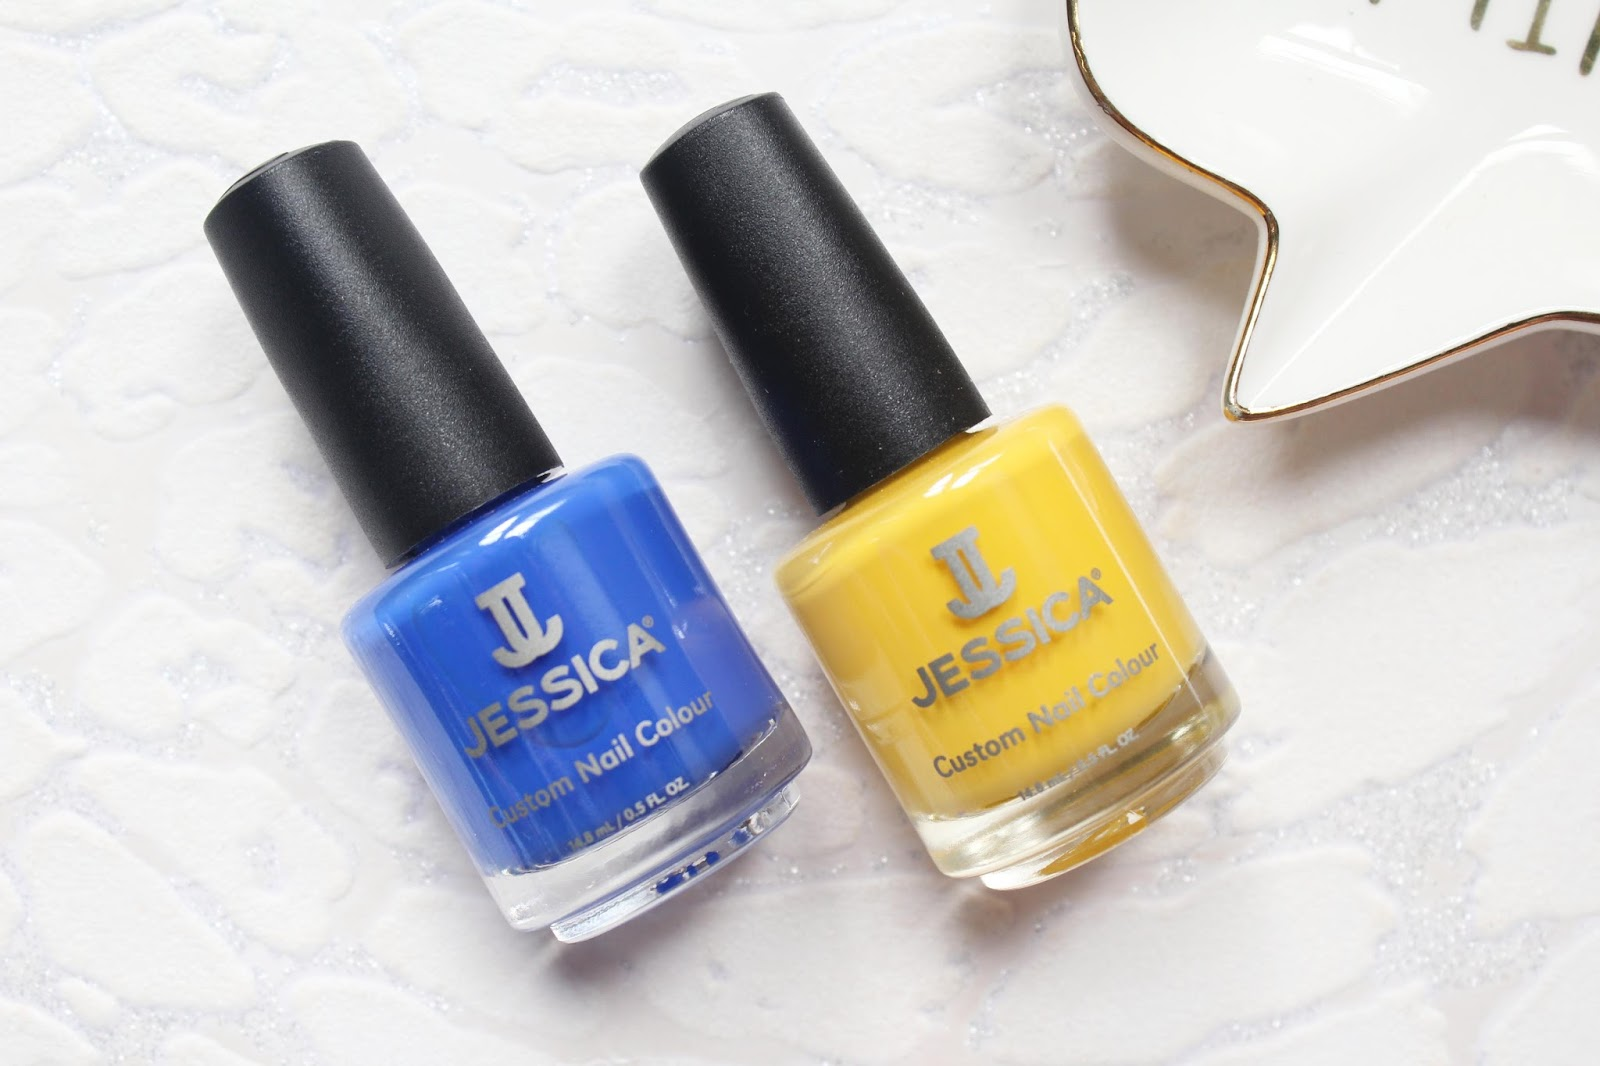 Jessica Prime Nail Polish Collection